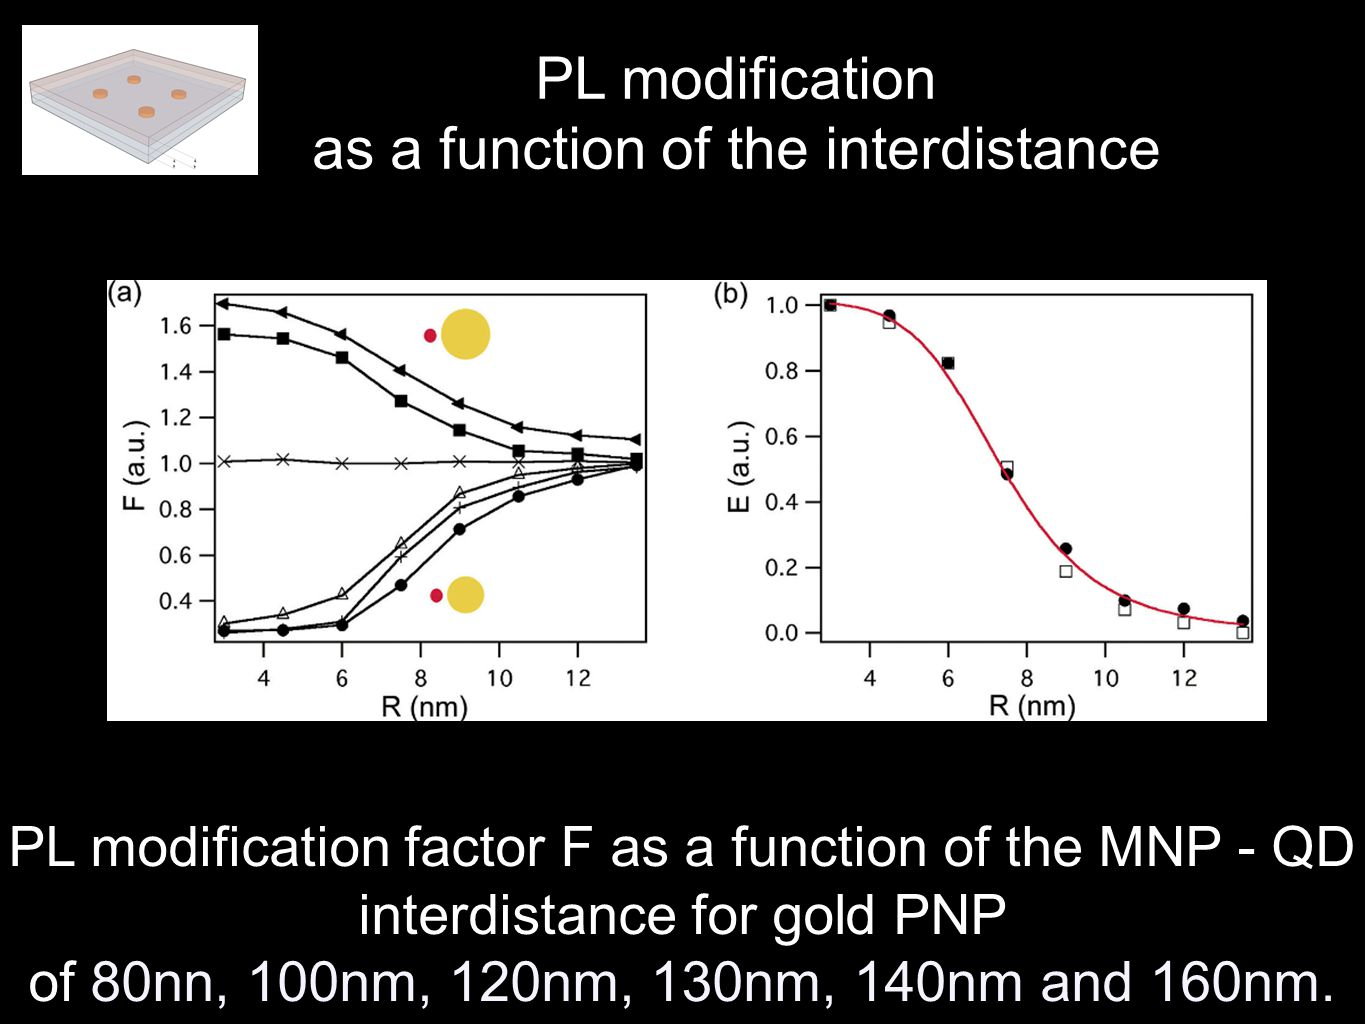 PL modification factor F as a function of the MNP - QD interdistance for gold PNP of 80nn, 100nm, 120nm, 130nm, 140nm and 160nm.